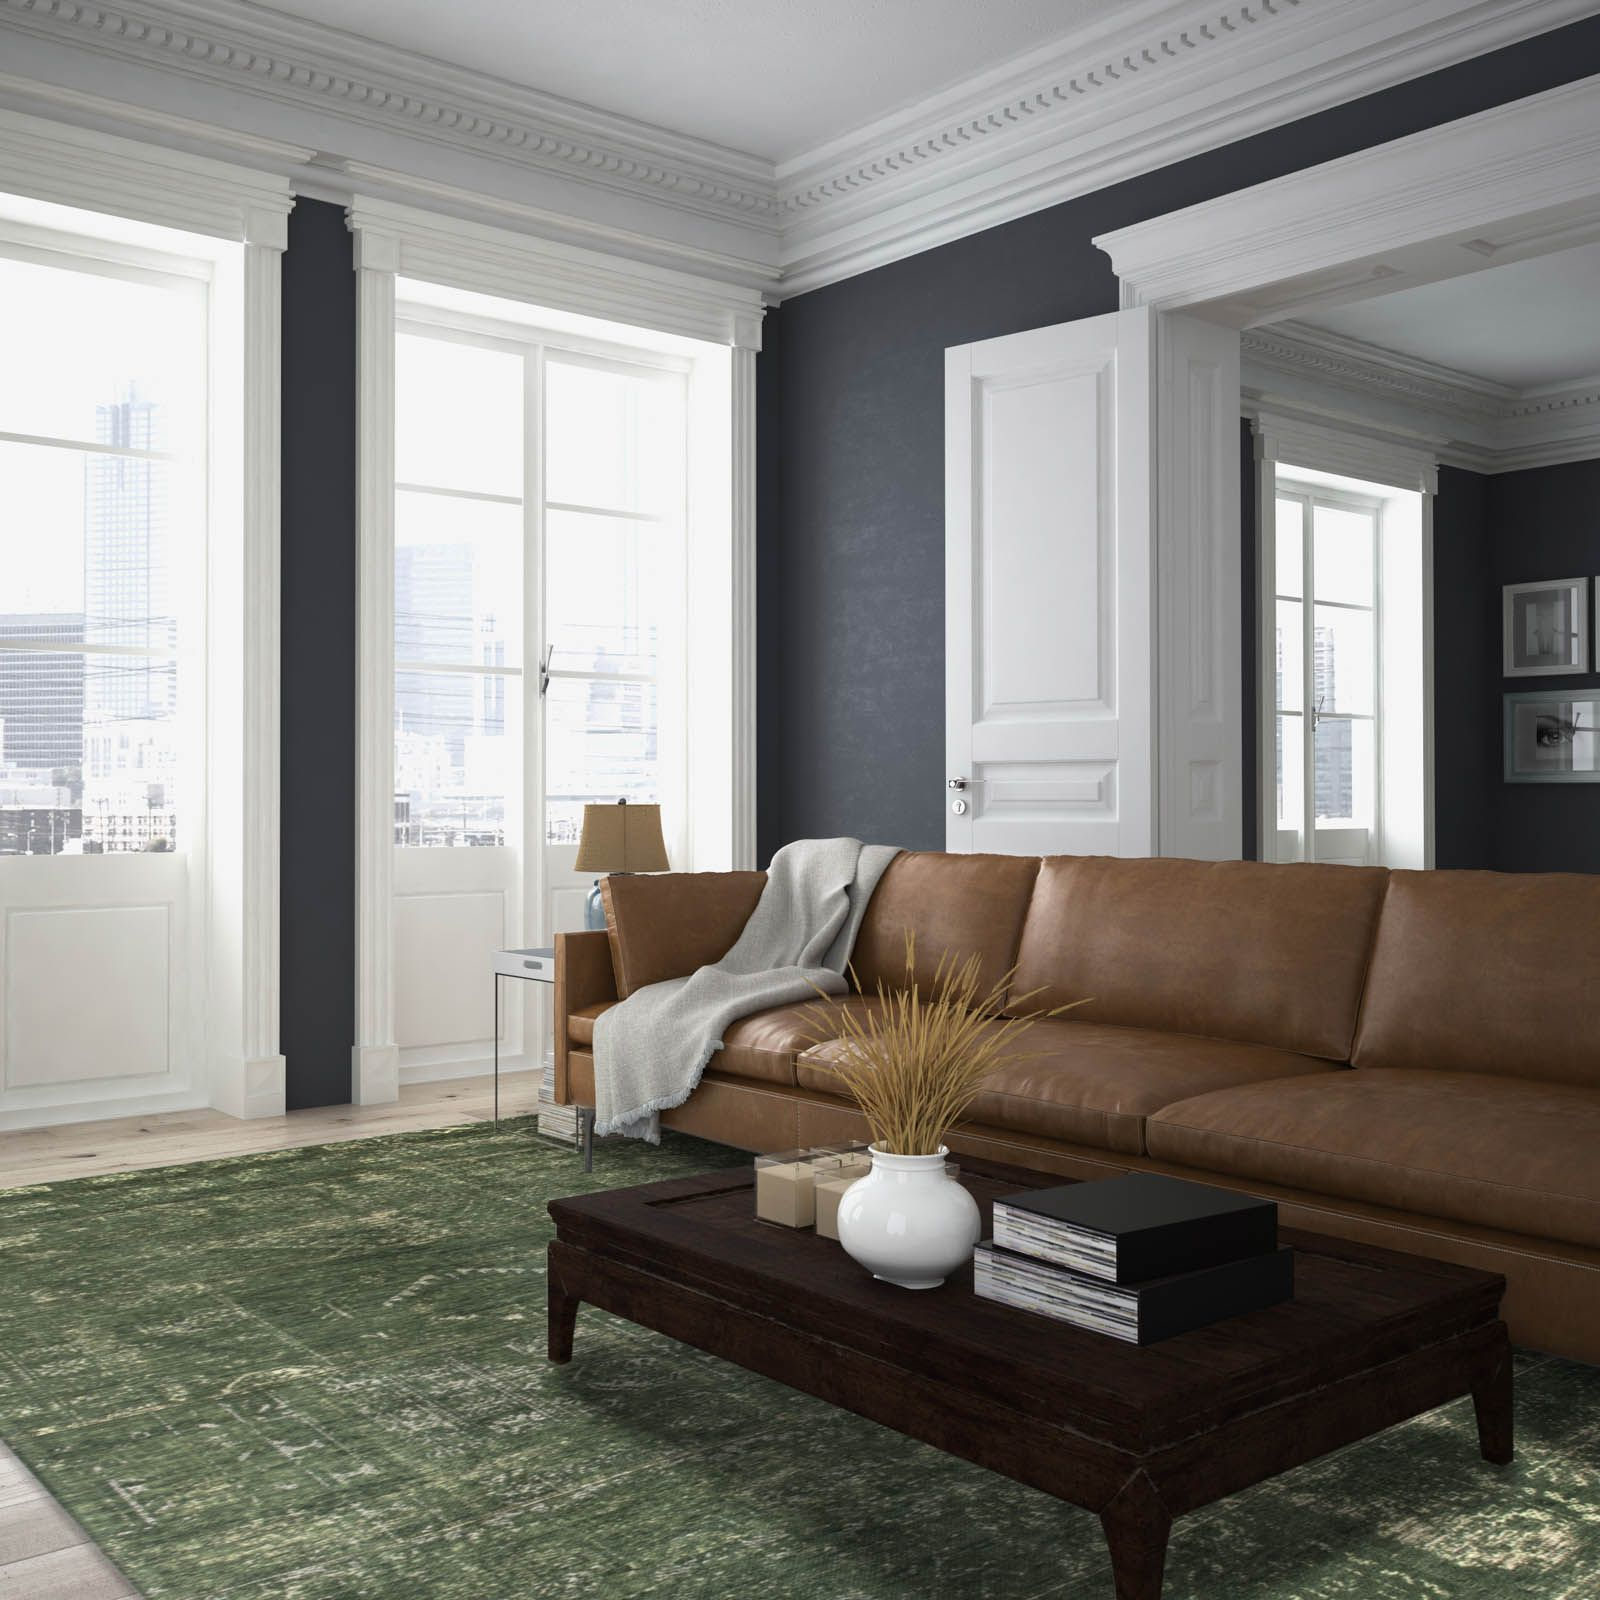 Louis De Poortere Fading World Rugs 8271 Perrier Green Regarding Cromwell Modular Sectional Sofas (View 15 of 15)